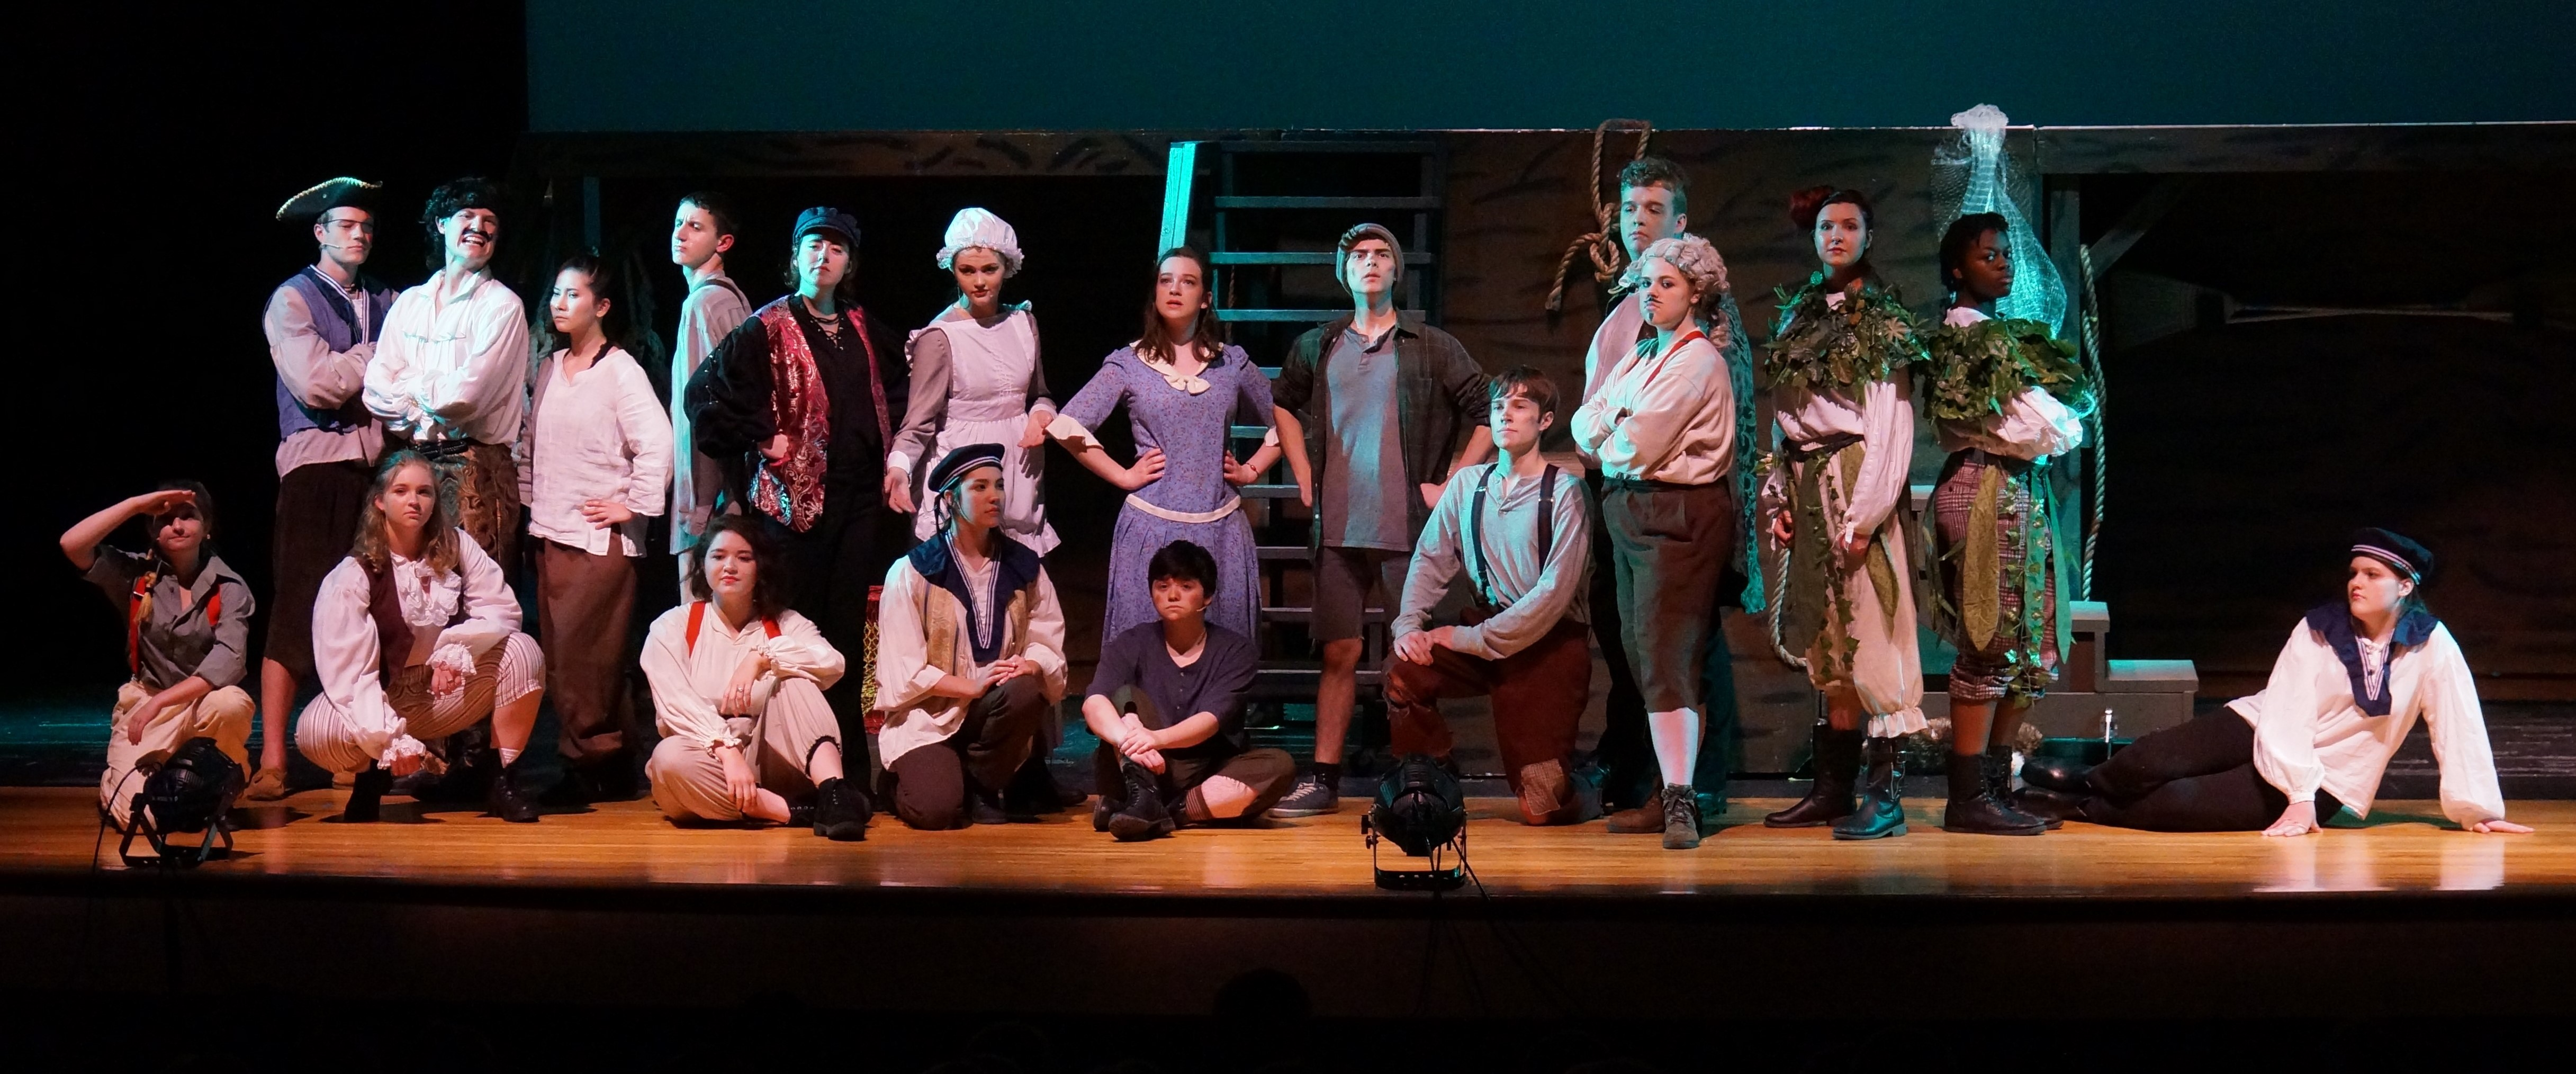 Peter and the Starcatcher, 2018